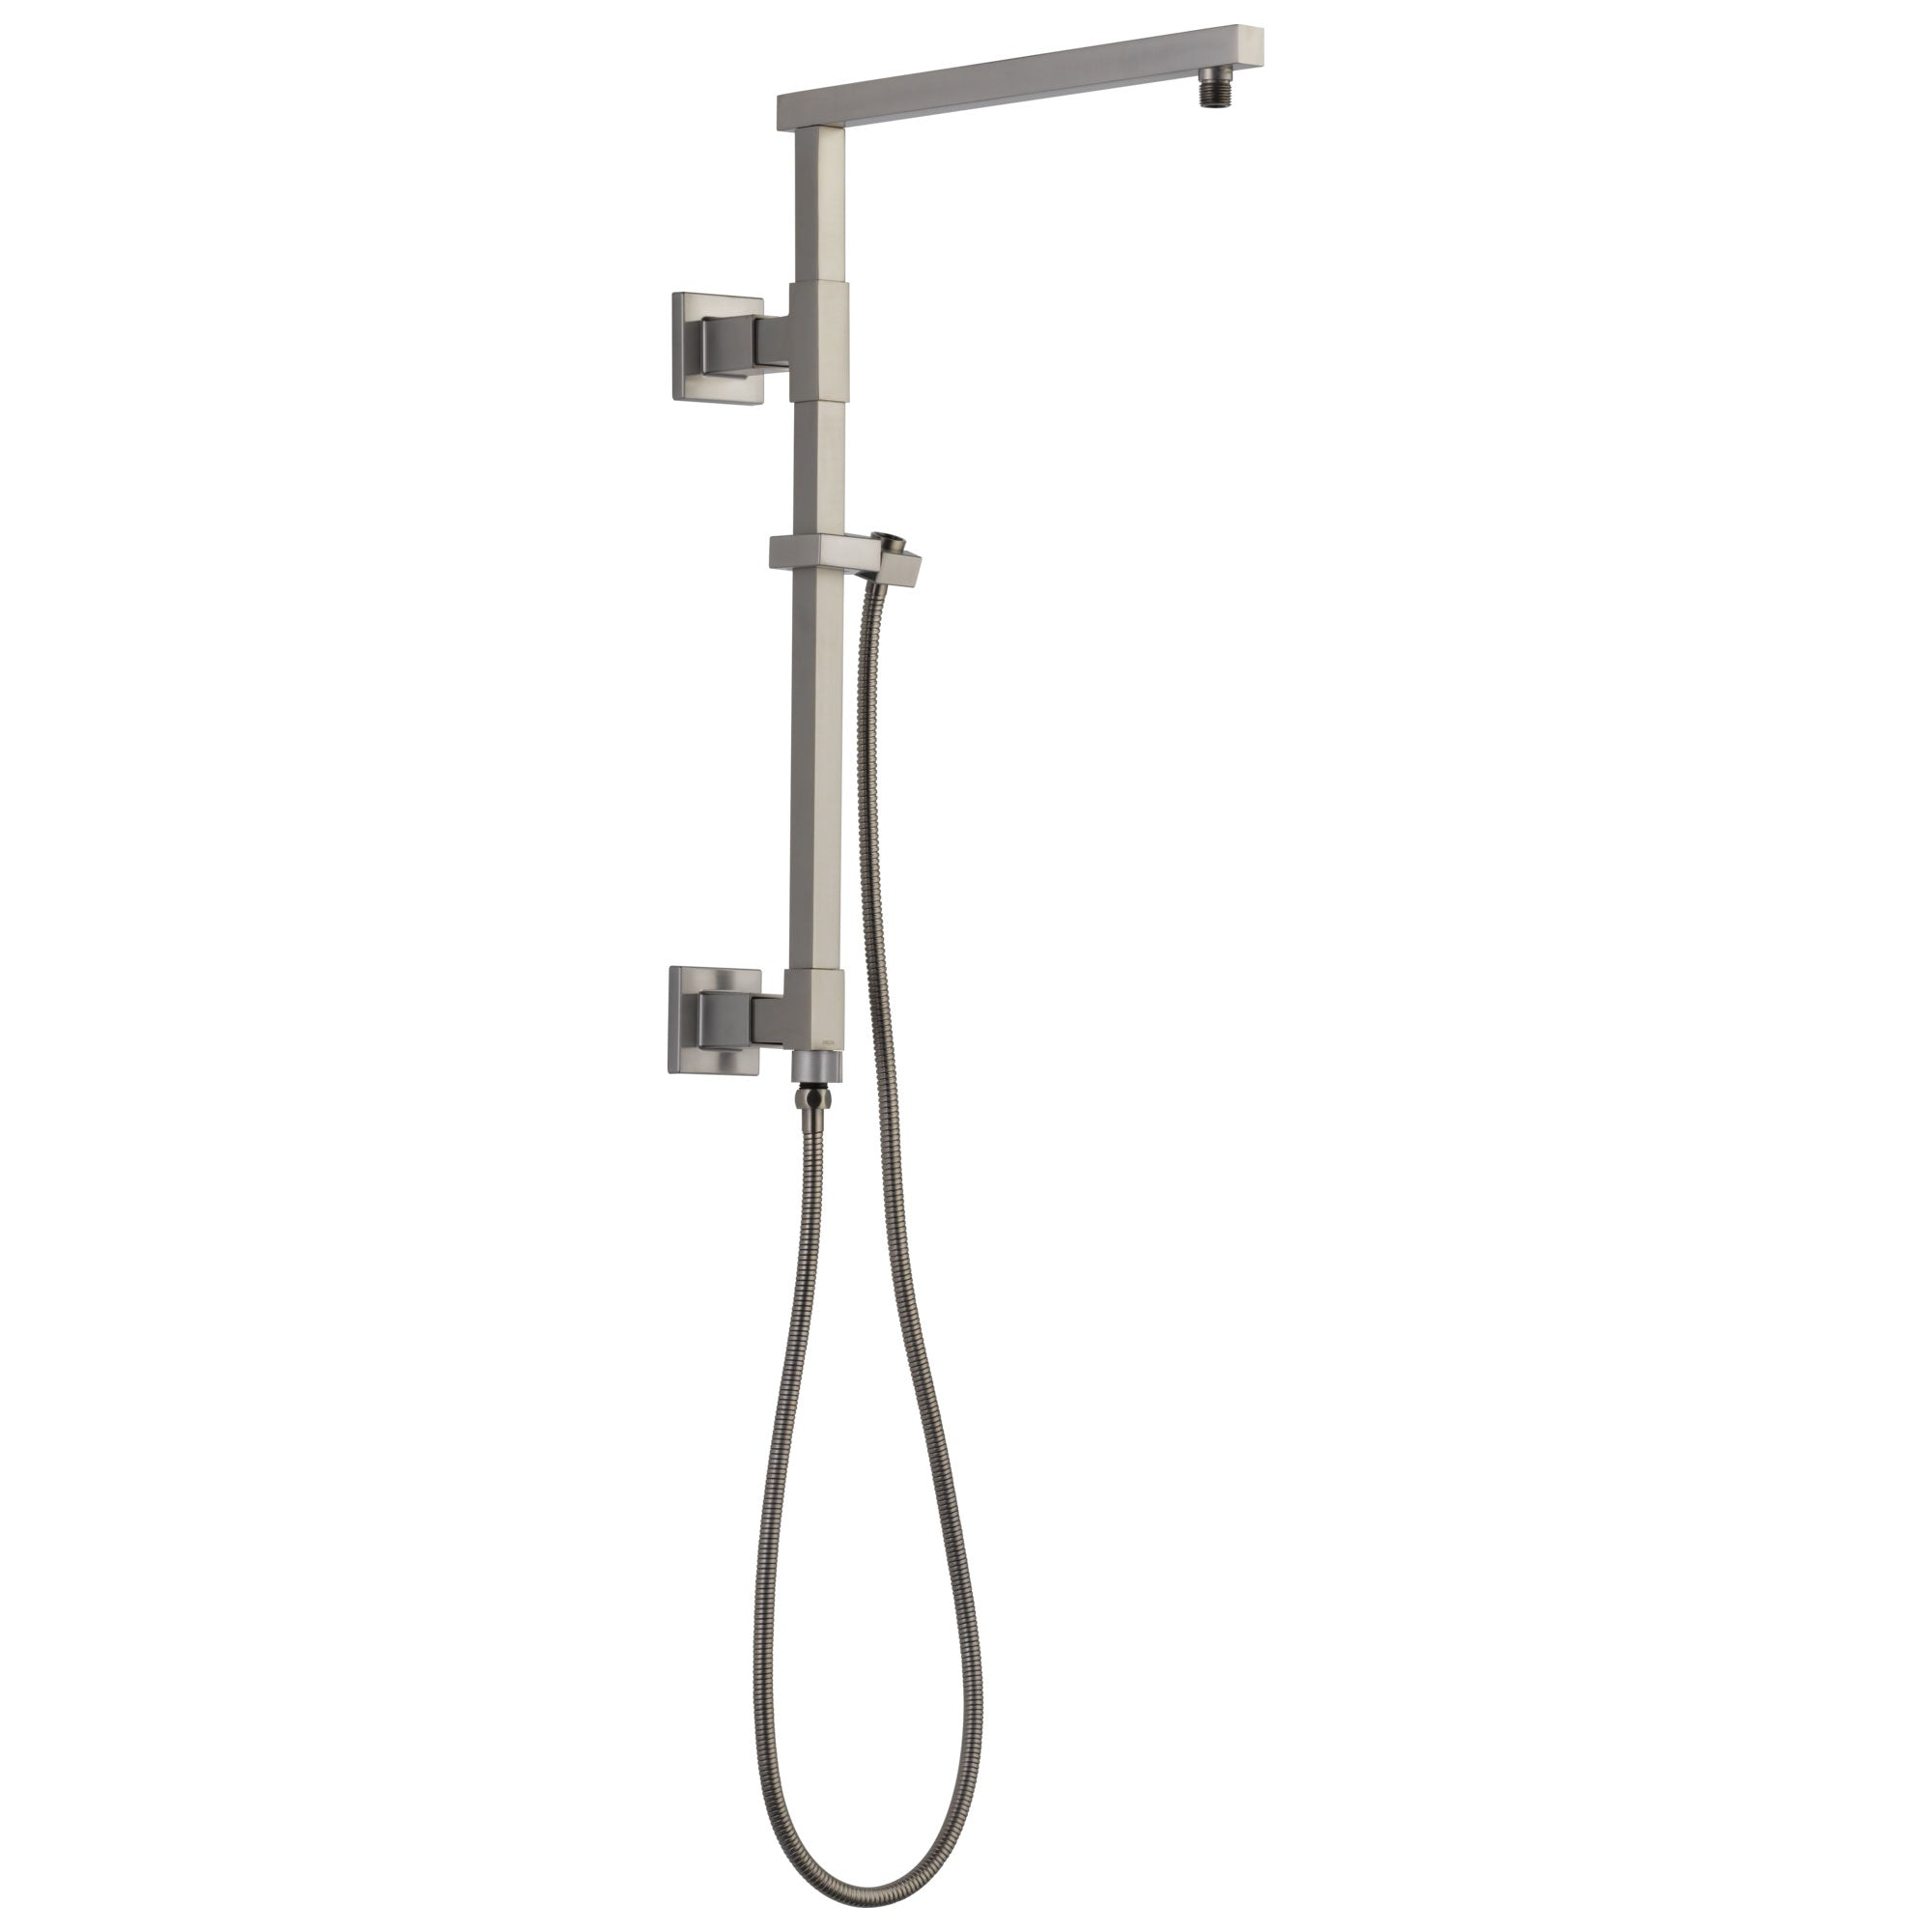 "Delta Stainless Steel Finish Emerge Modern Angular Square Shower Column 18"" (Requires Showerhead, Hand Spray, and Control) D58410SS"